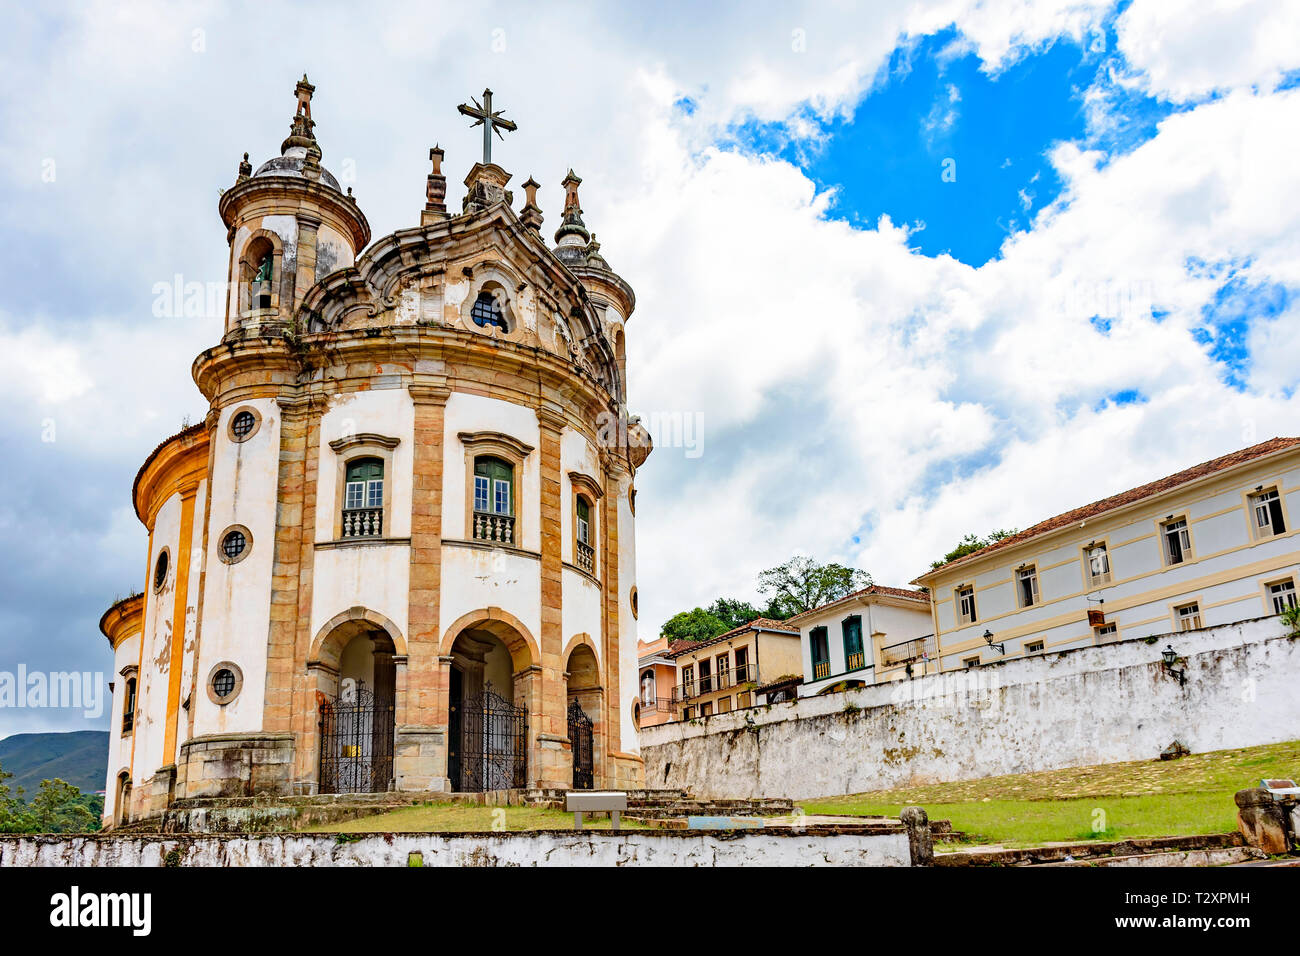 Old catholic church of the 18th century in colonial style located in the center of the famous and historical city of Ouro Preto in Minas Gerais - Stock Image